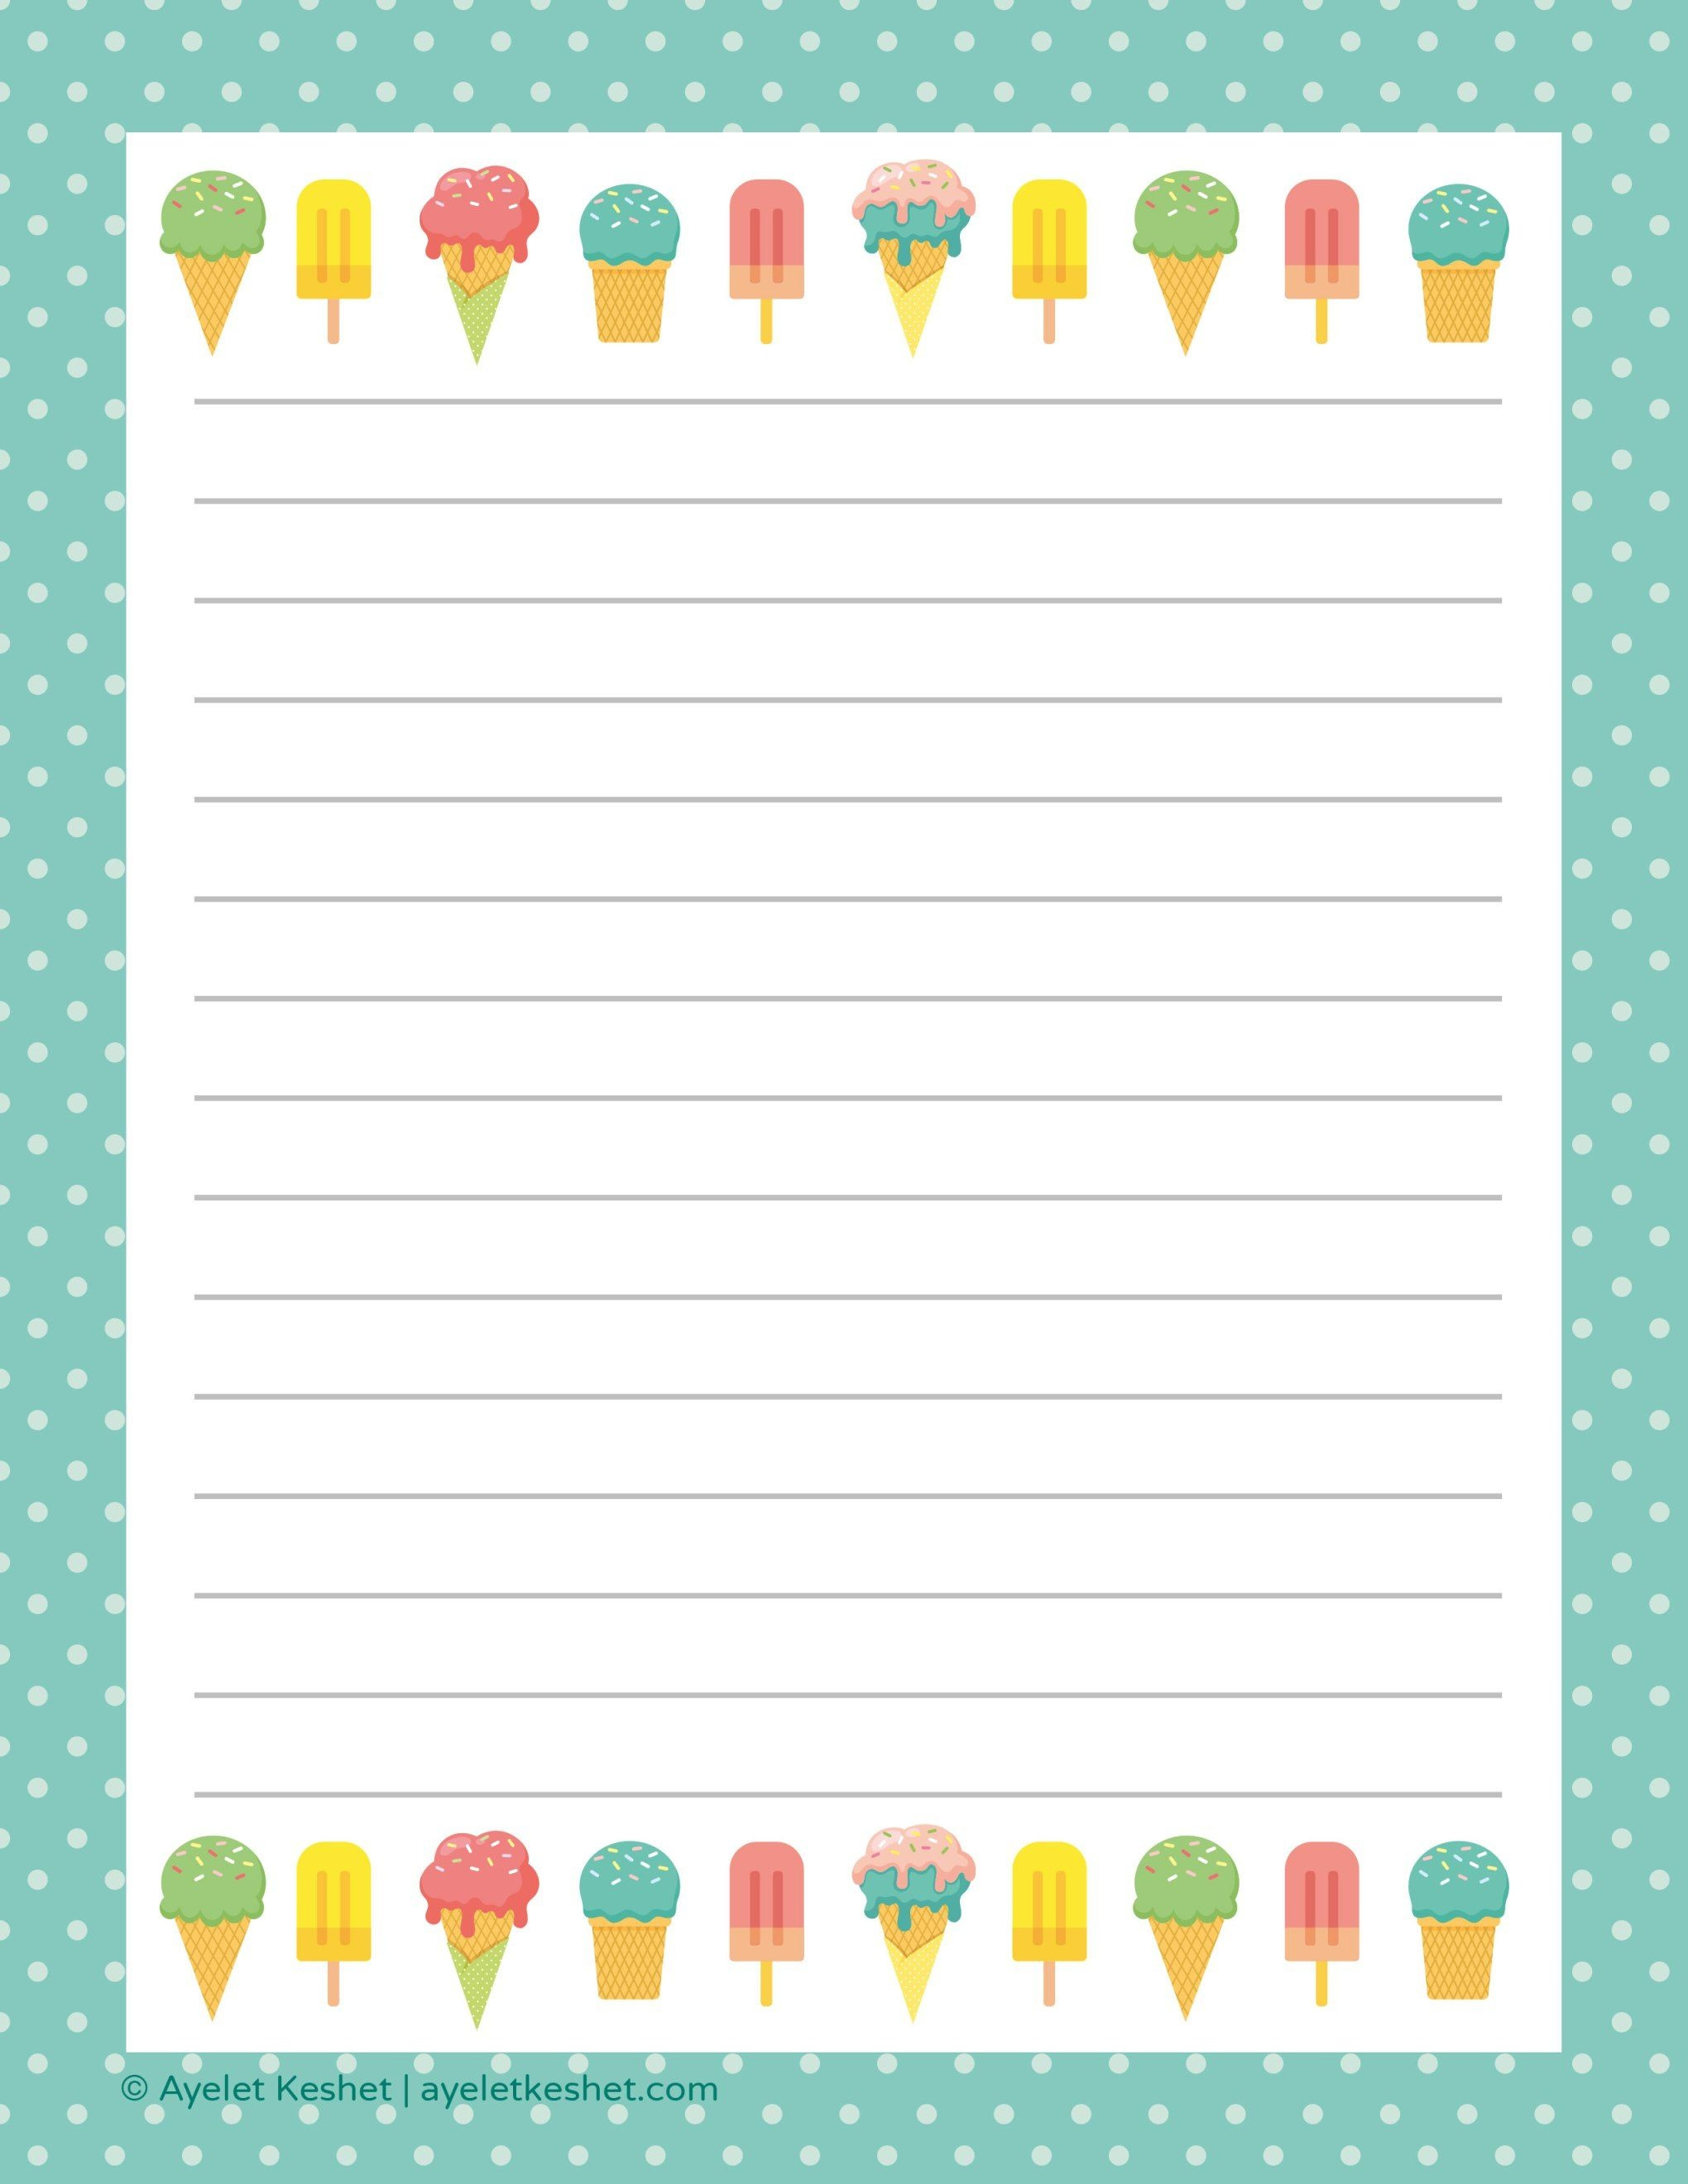 Free Printable Letter Paper | Printables To Go | Free Printable - Free Printable Stationery